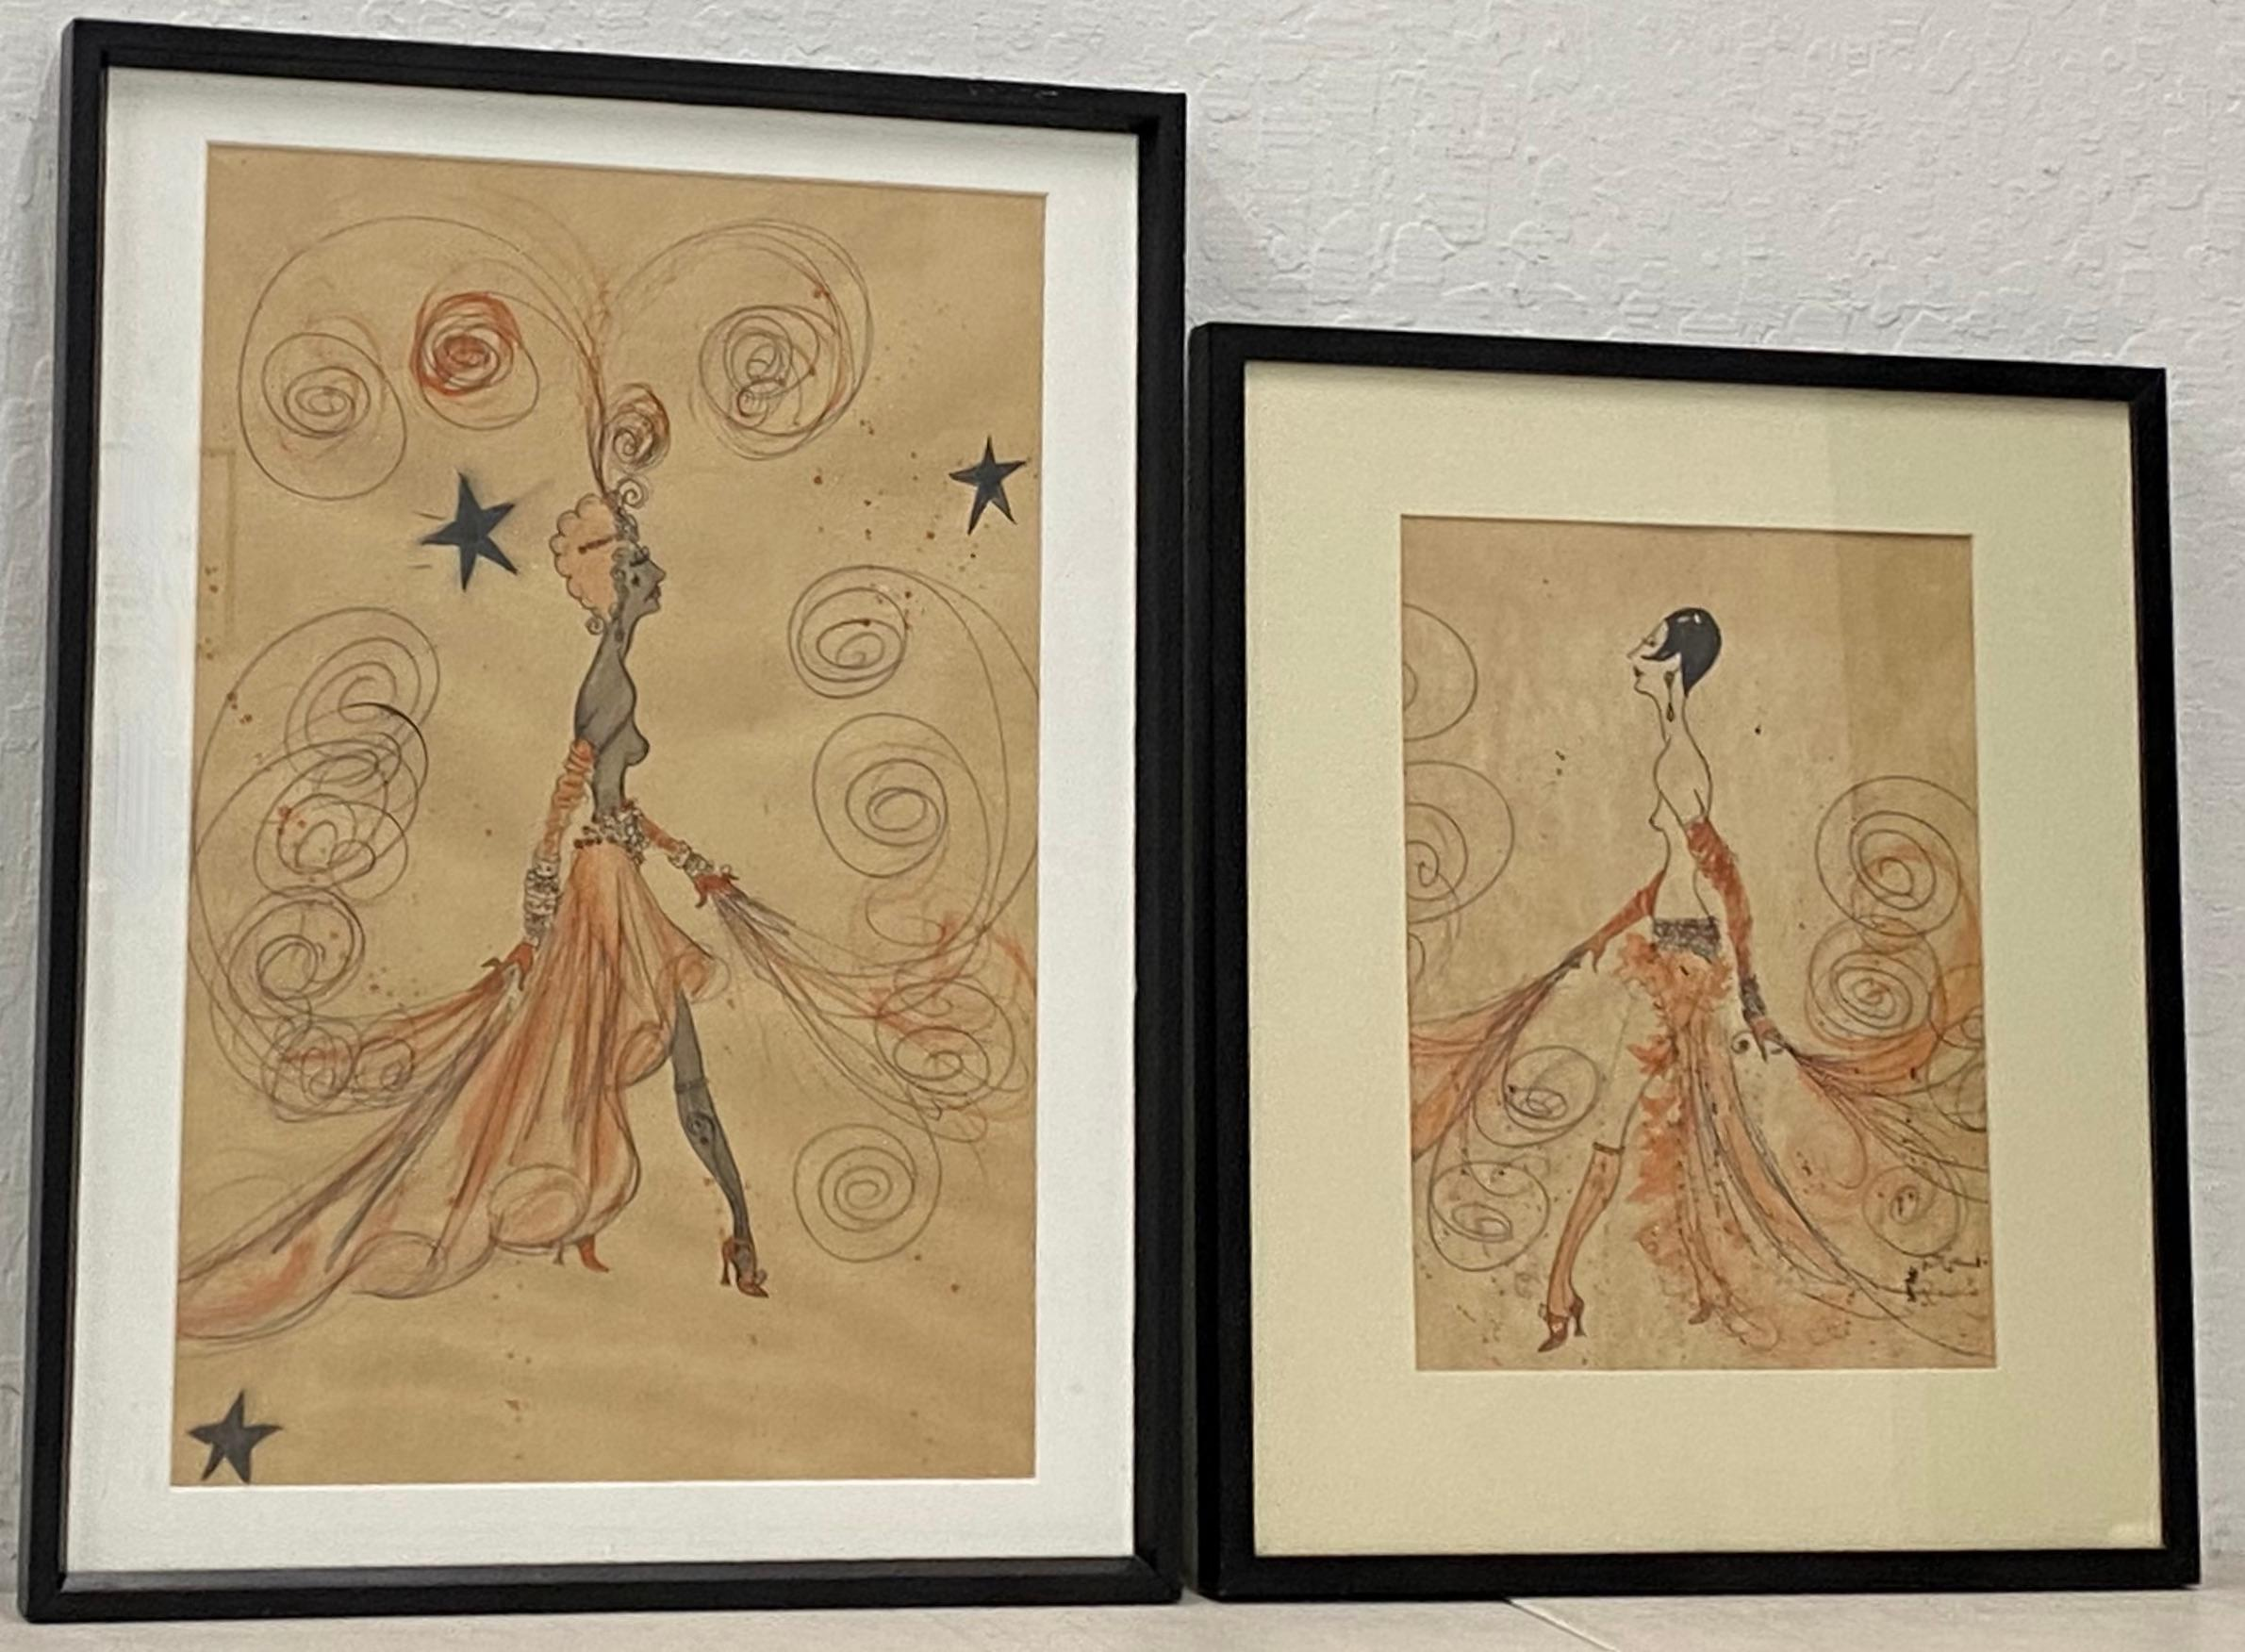 Pair of High Fashion Deco Style Illustrations by Bettencourt C.1978